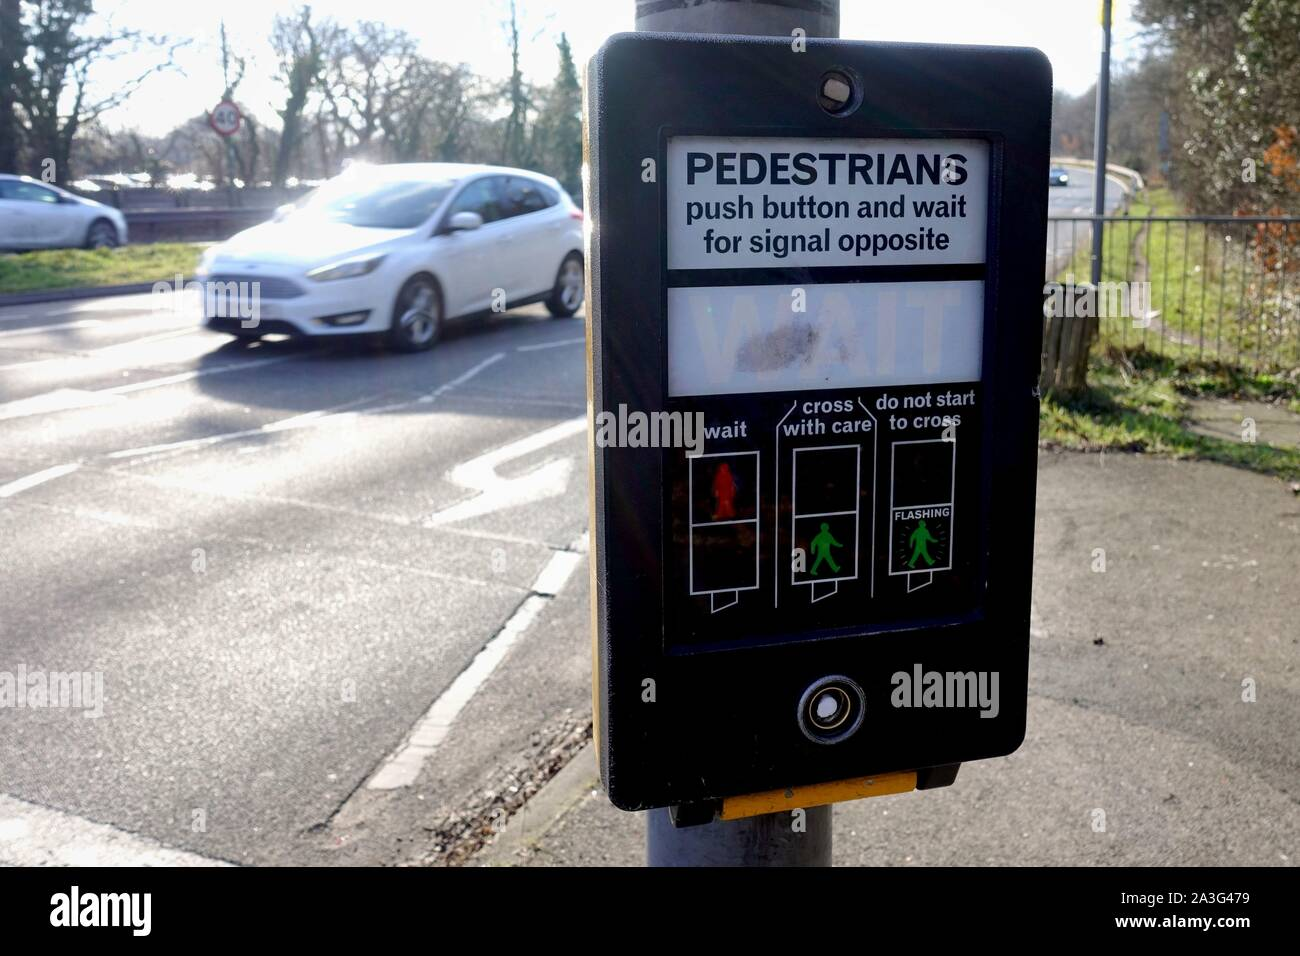 Camberley, Surrey, UK - February 6 2018: Pedestrian crossing button and control display, where people can push a button to change the traffic lights, Stock Photo